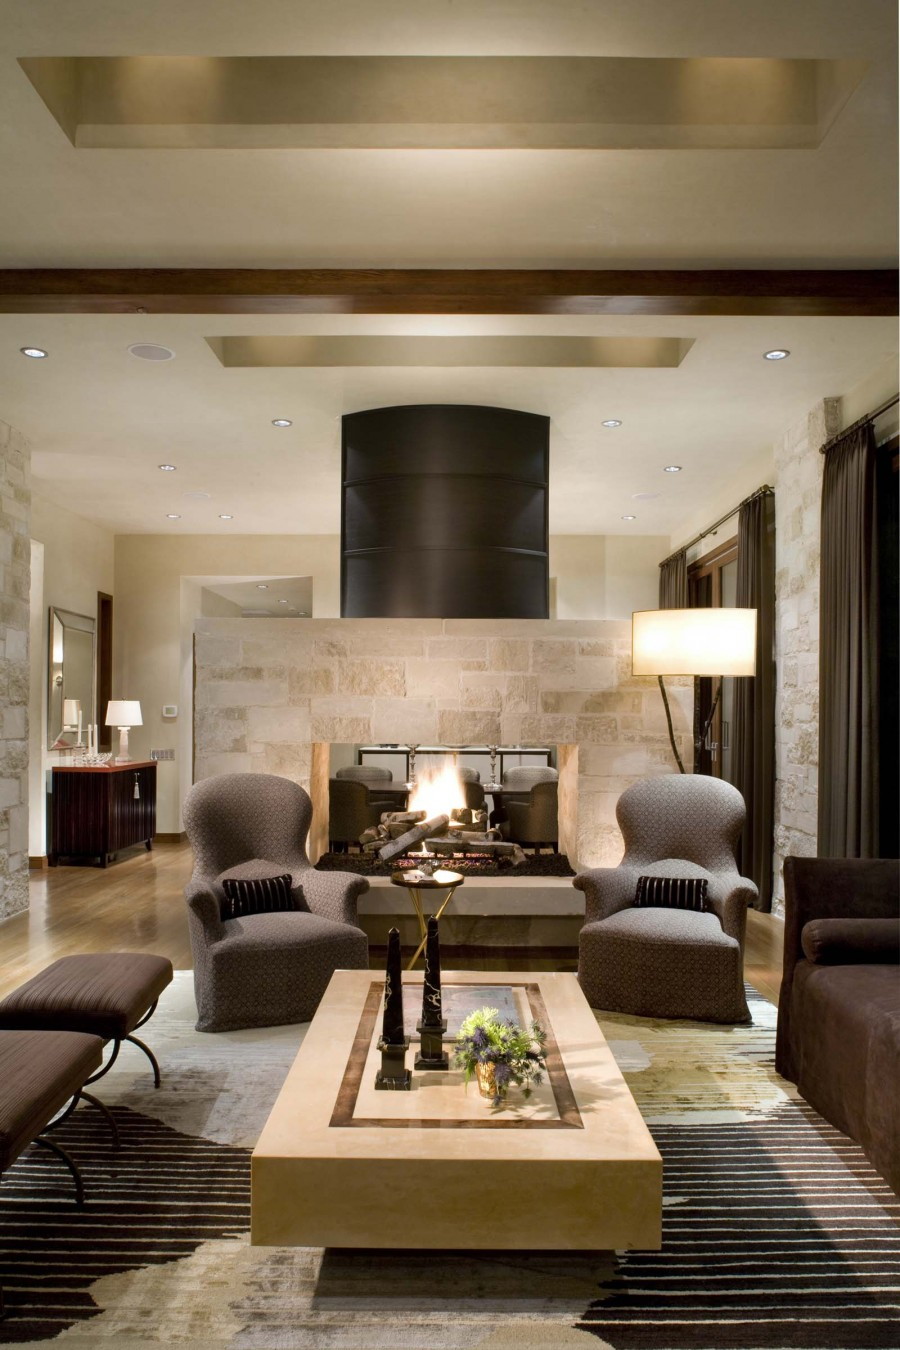 16 fabulous earth tones living room designs decoholic for Designing a living room space